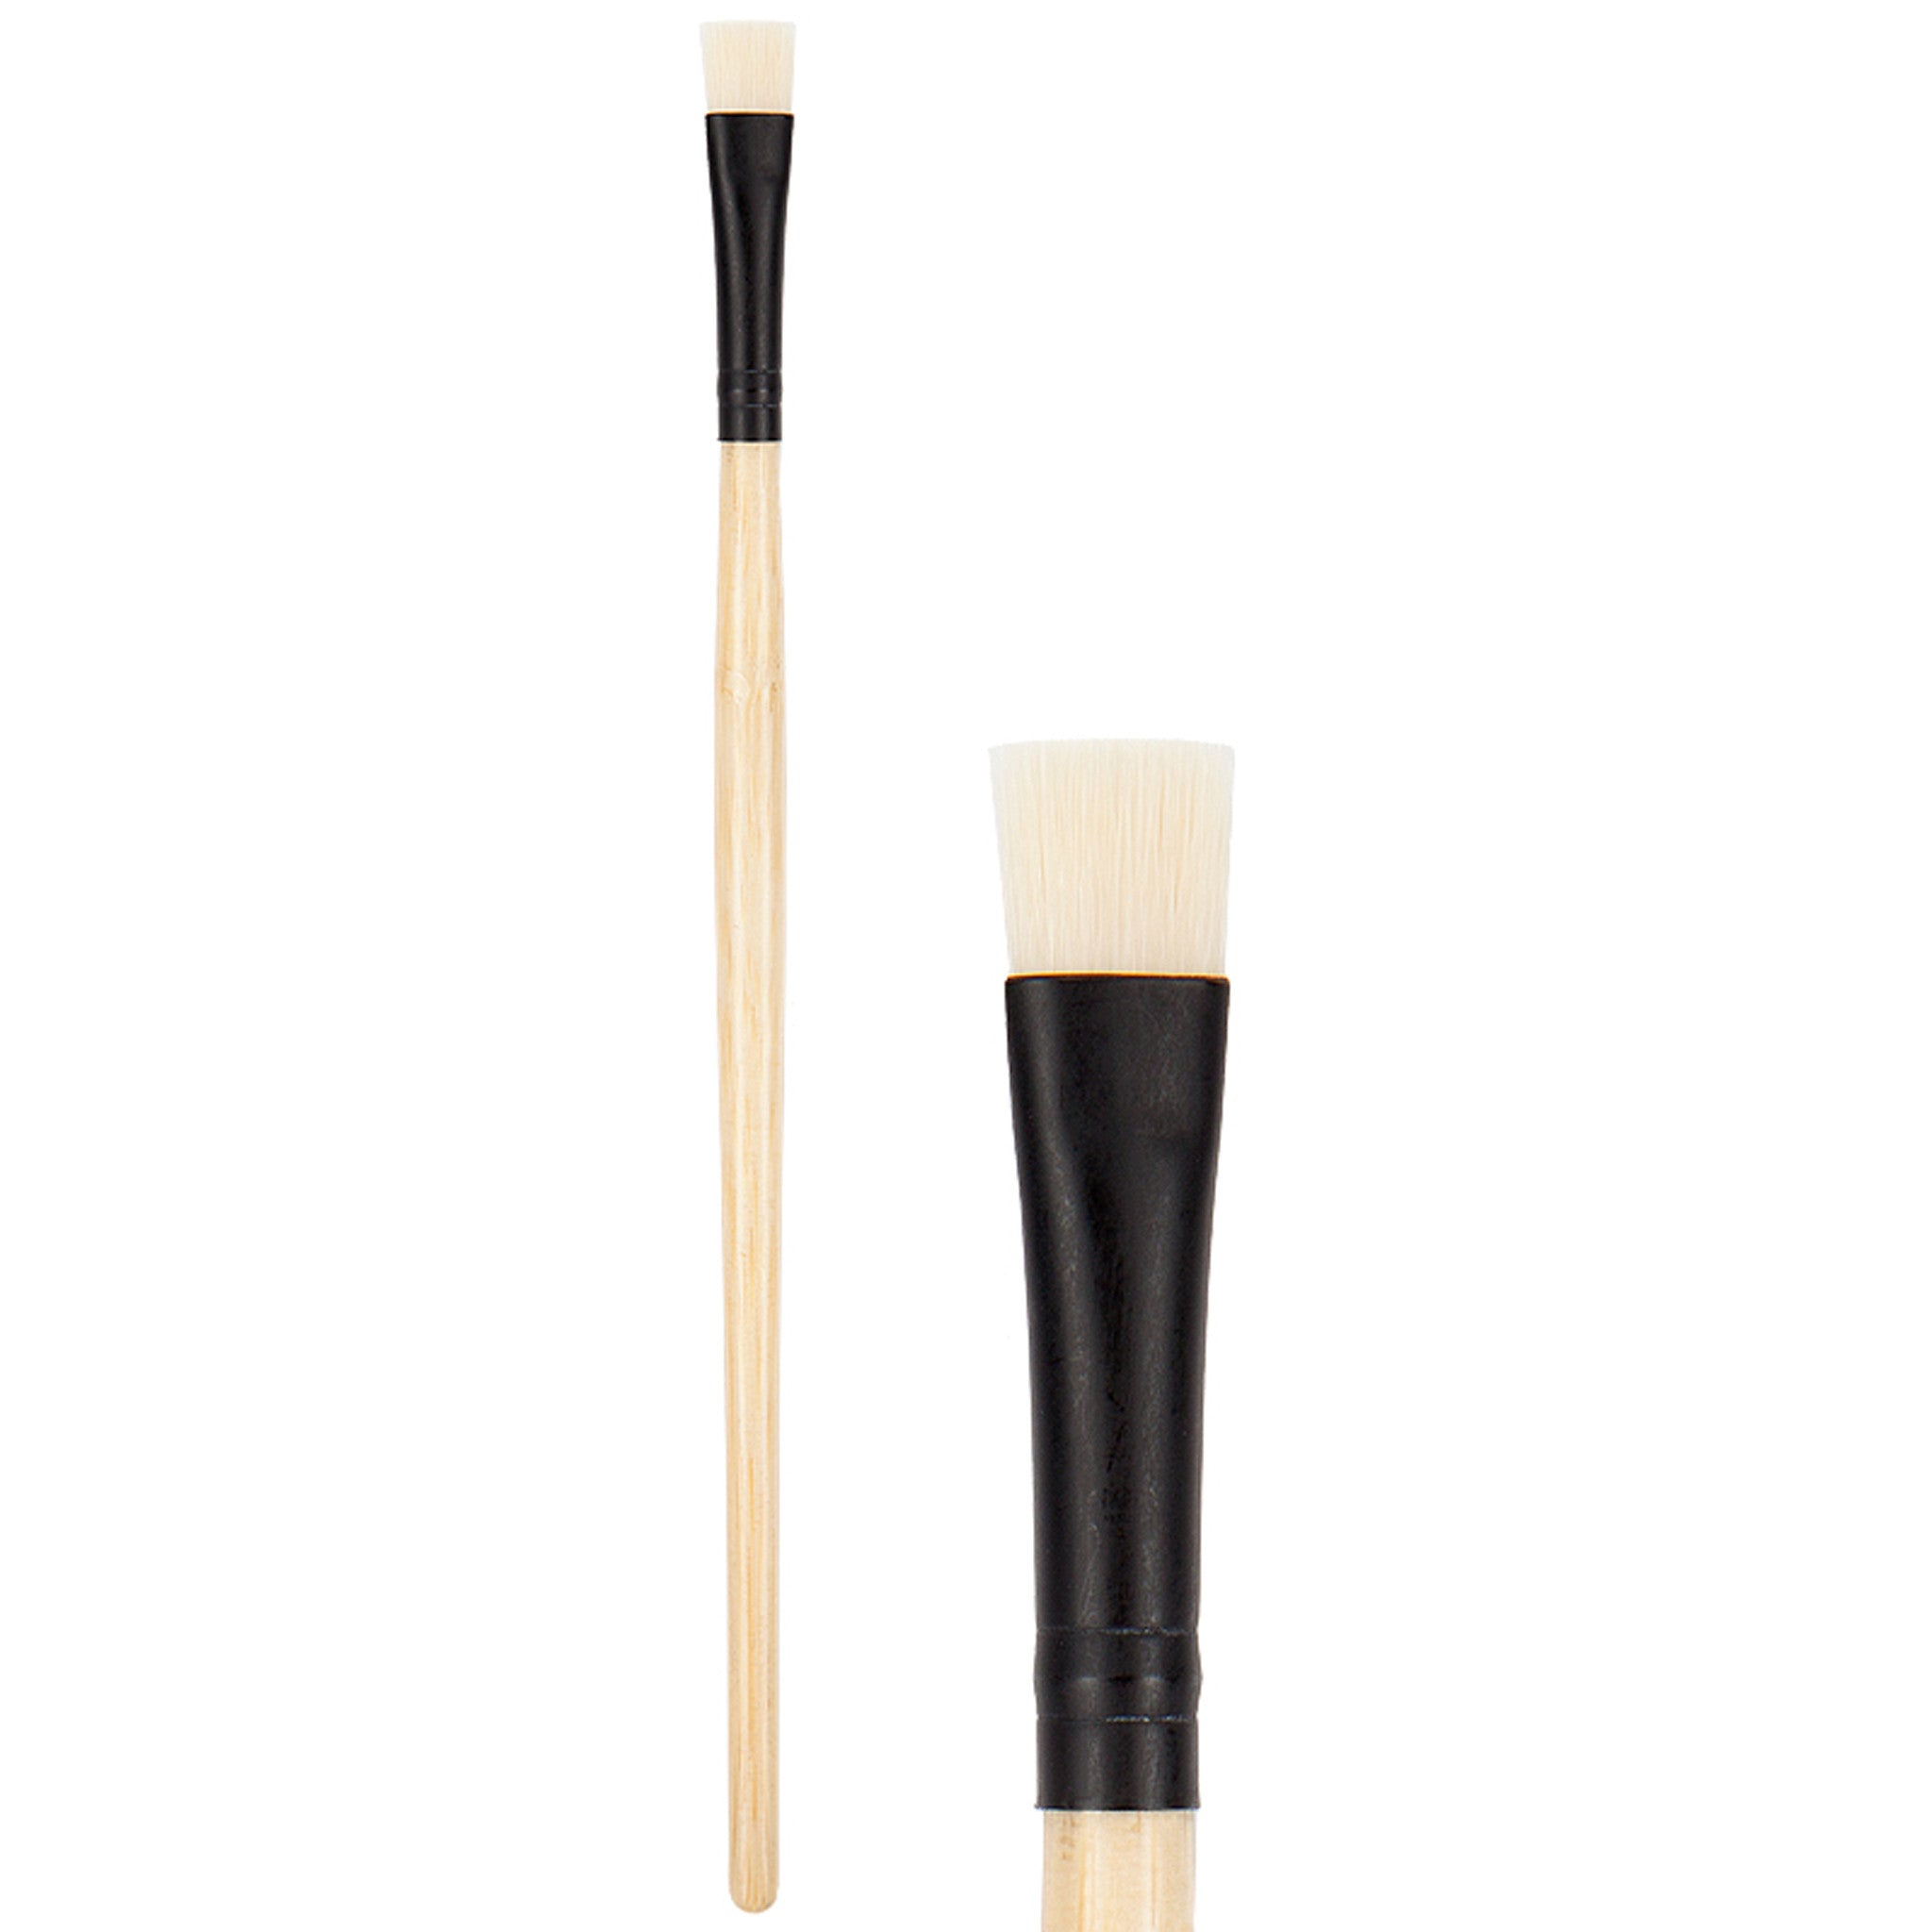 Coastal Scents coupon: Elite Flat Liner Brush